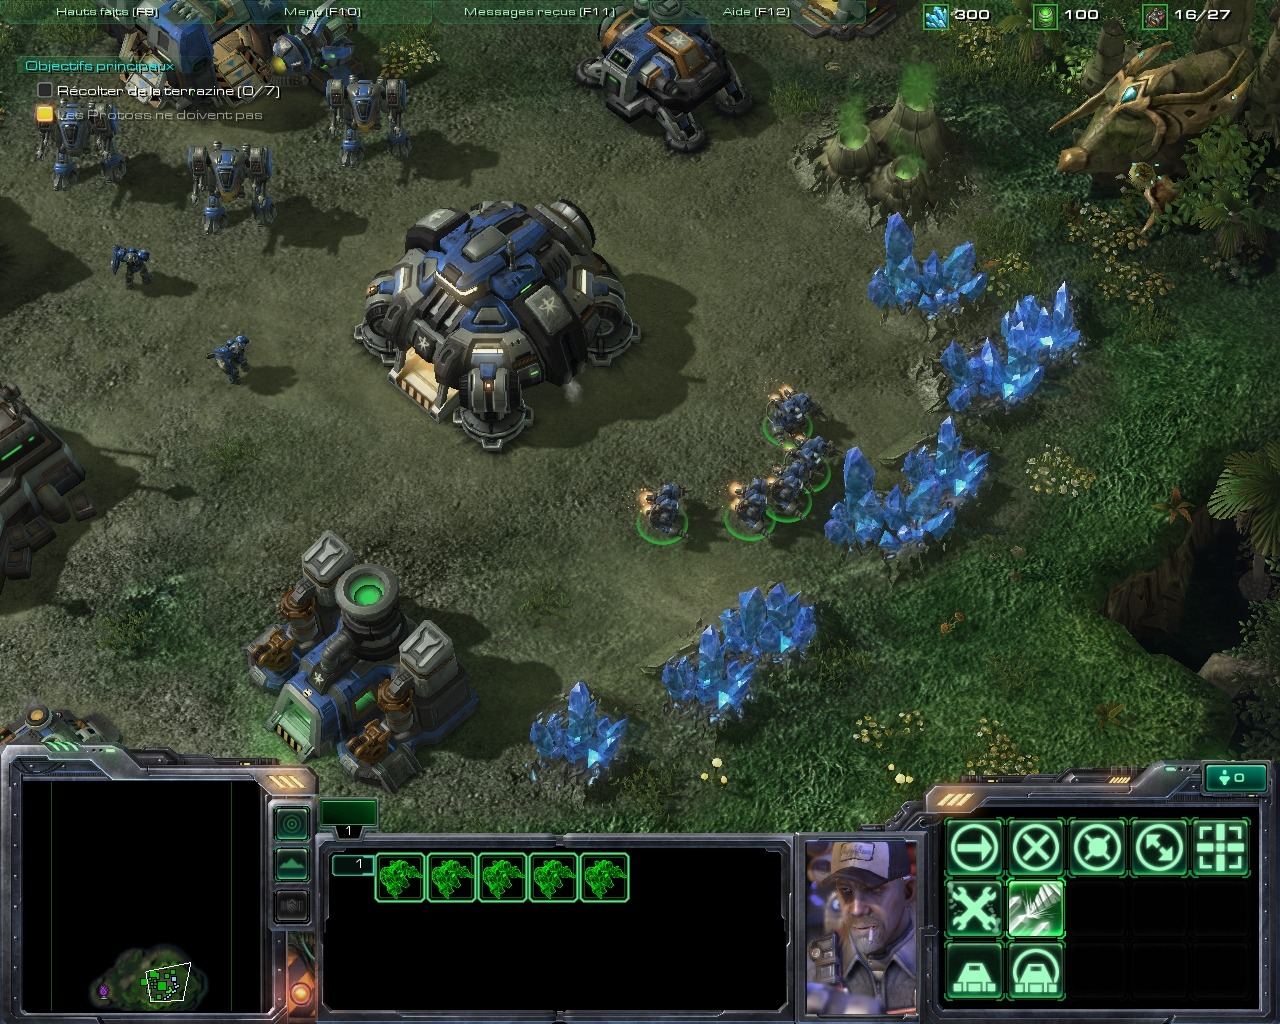 http://image.jeuxvideo.com/images/pc/s/t/starcraft-ii-wings-of-liberty-pc-399.jpg